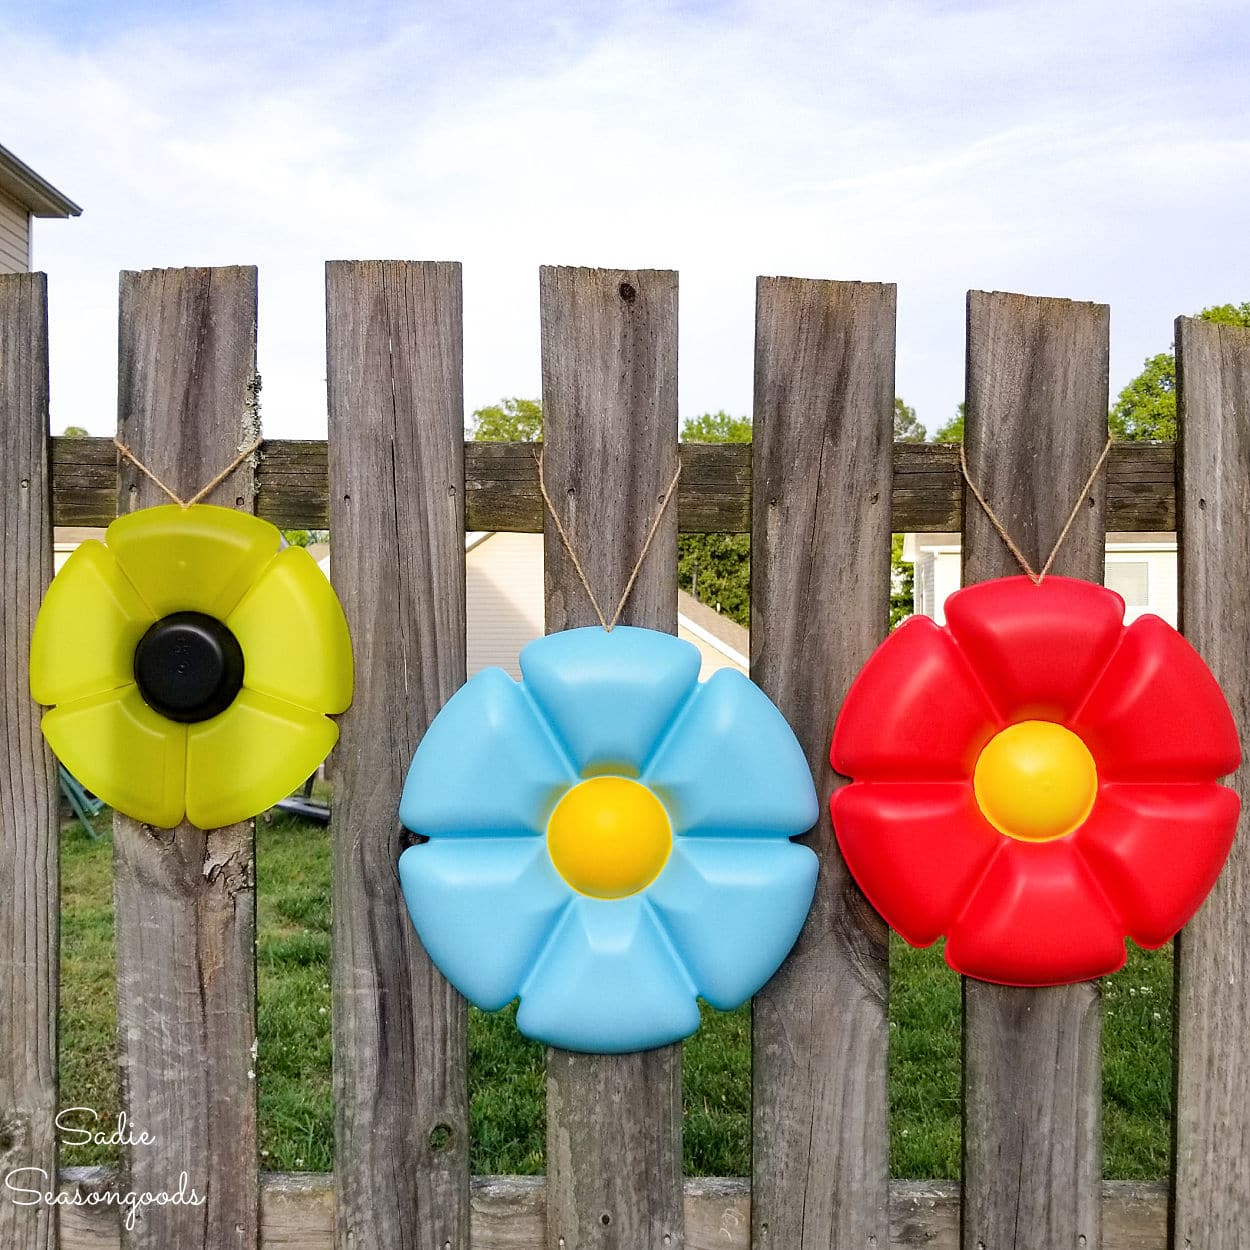 Whimsical Garden Decor from Round Plastic Trays